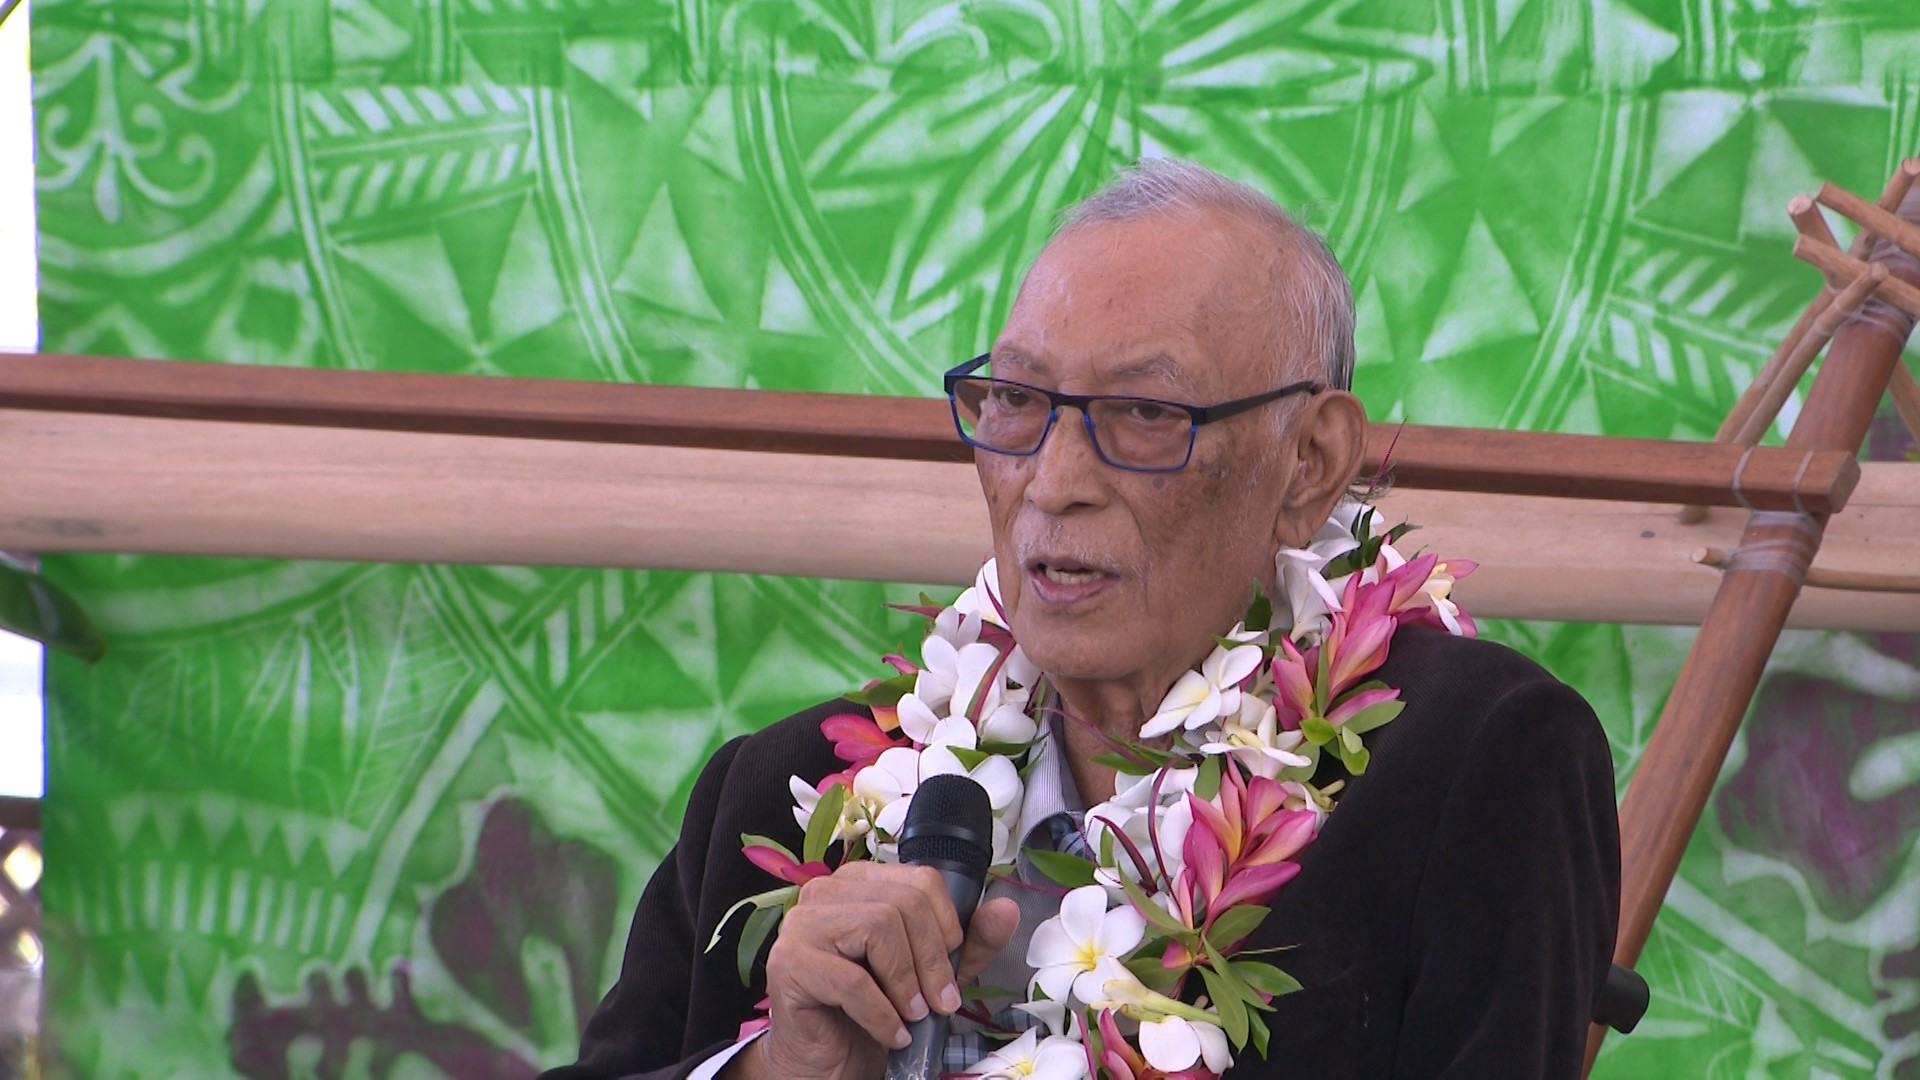 The Premier Sir Toke Talagi has publicly expressed his intentions of contesting the 2020 General Election.While speaking at the launch of his book this morning at the Fale fono, Sir…